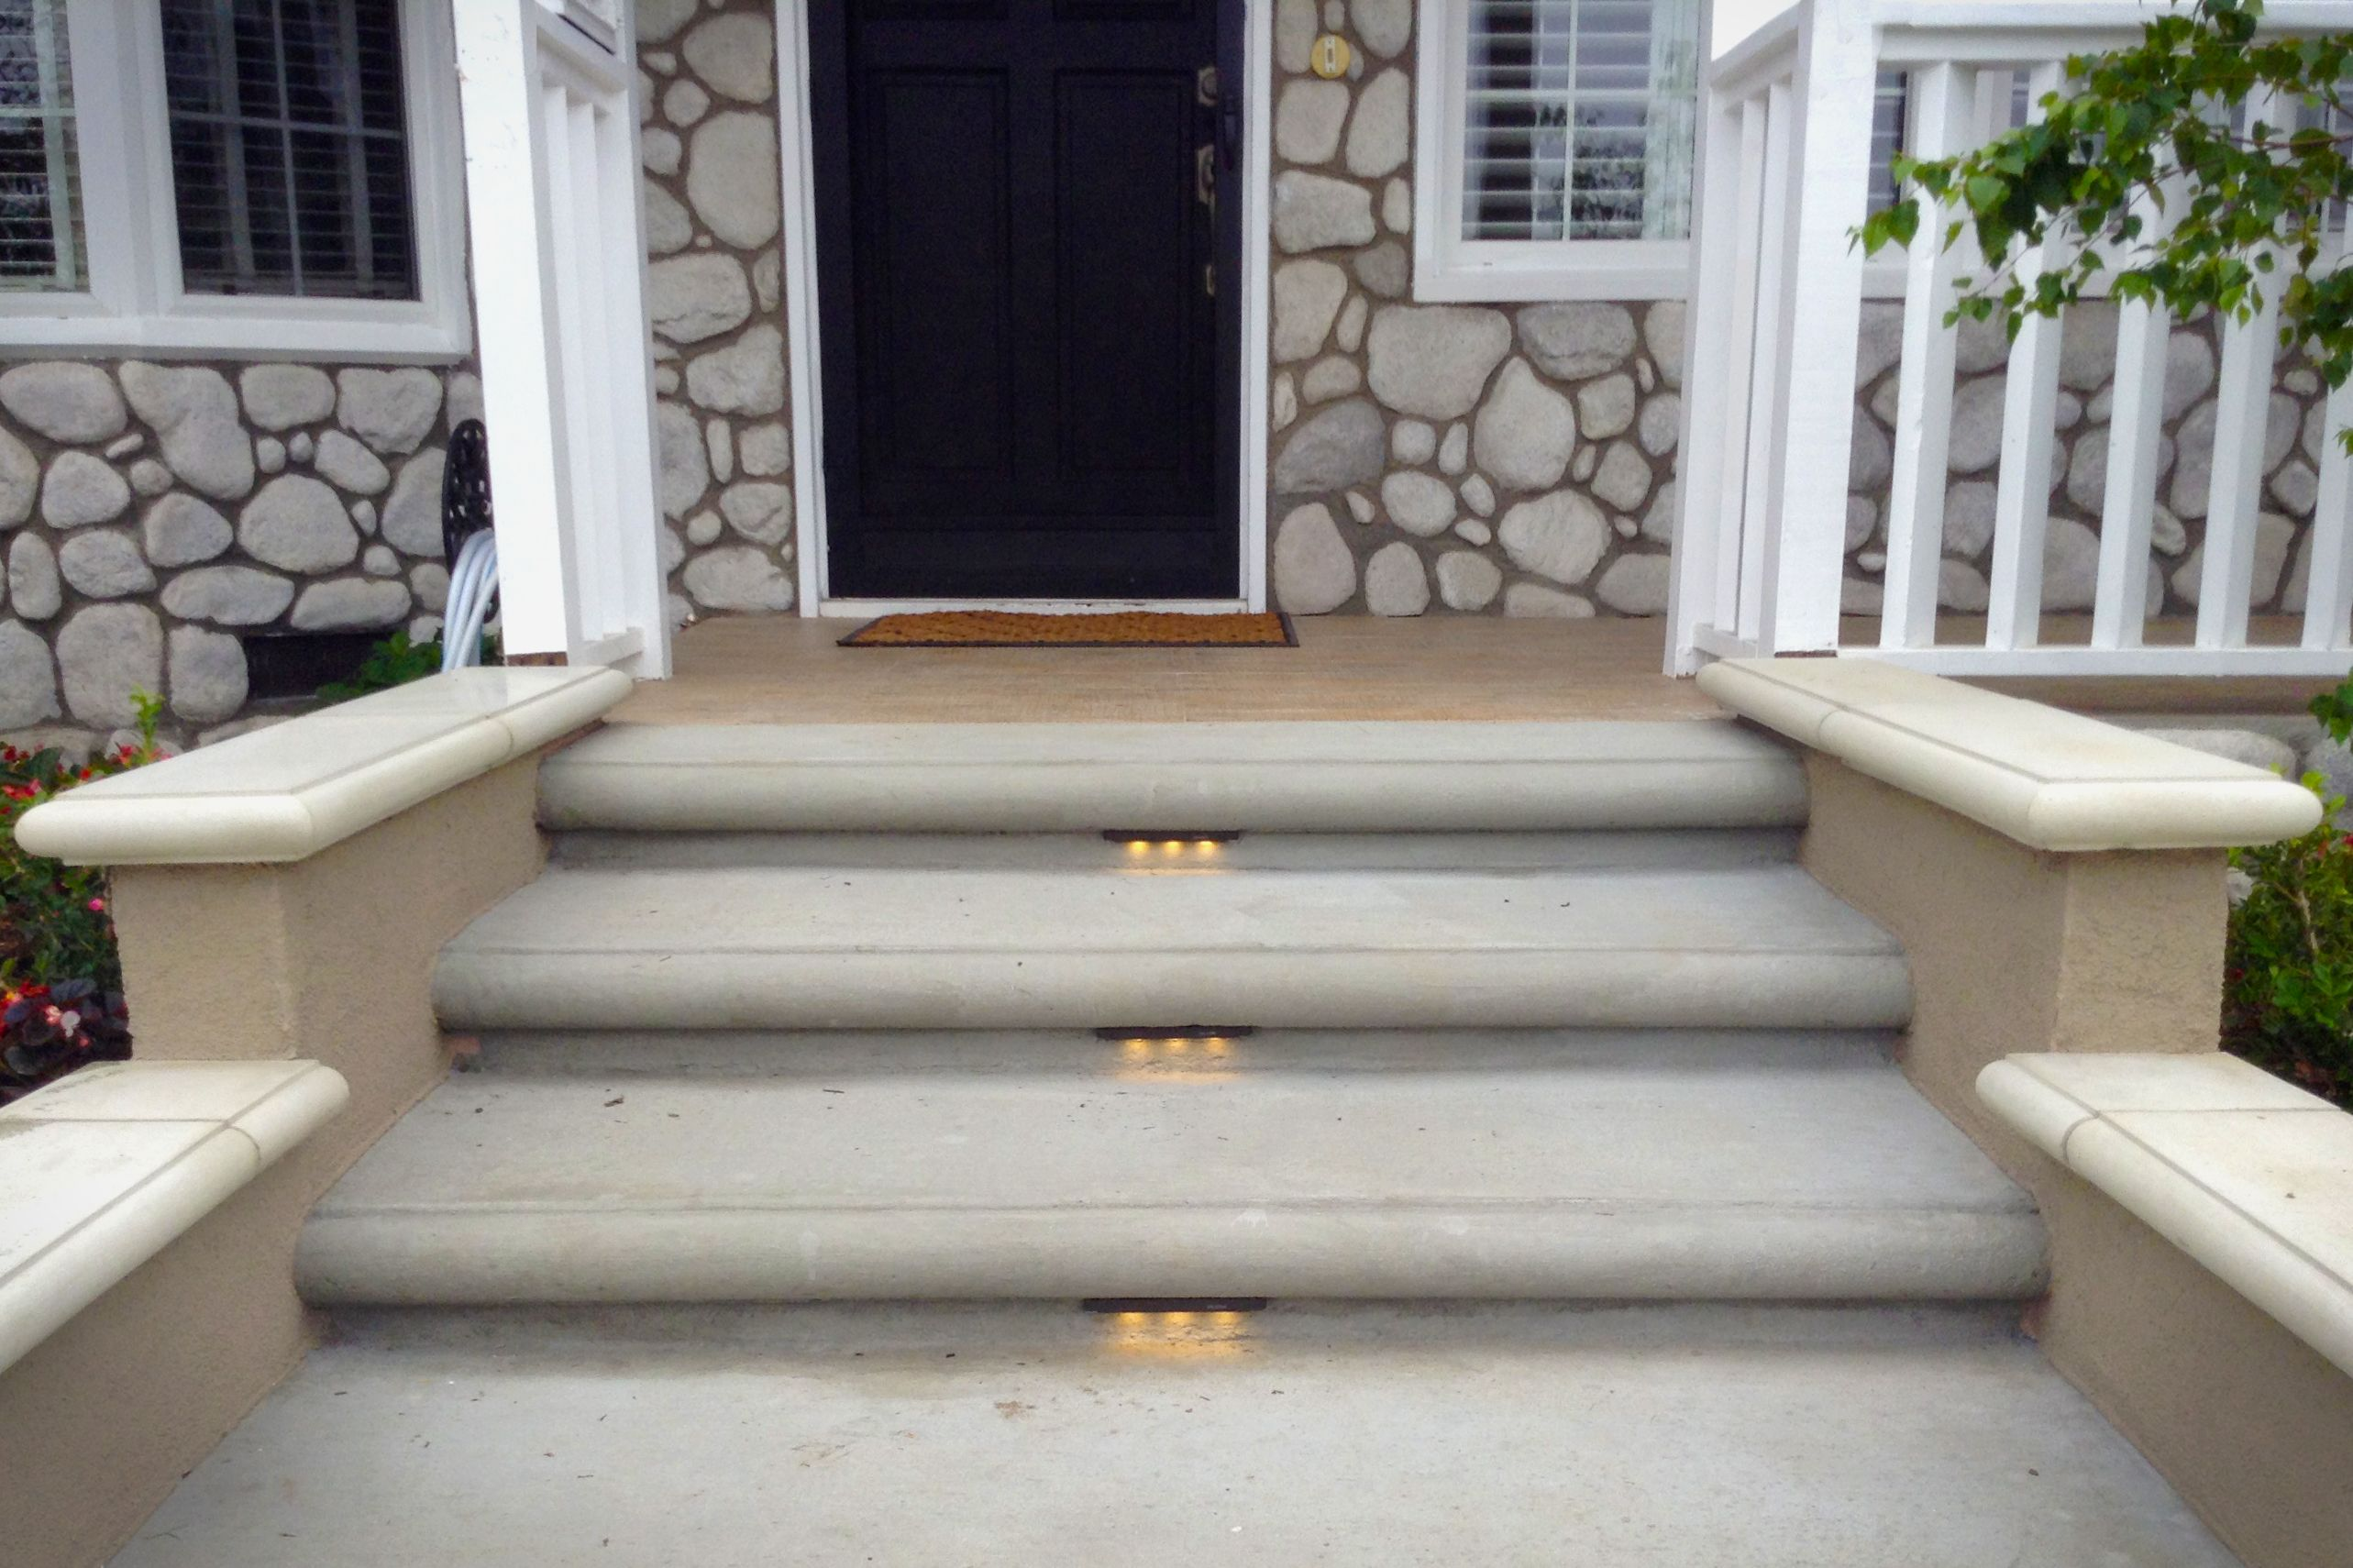 Front Porch Steps With Led Lights Led Step Lights Add To The Safety And Presentation Of The